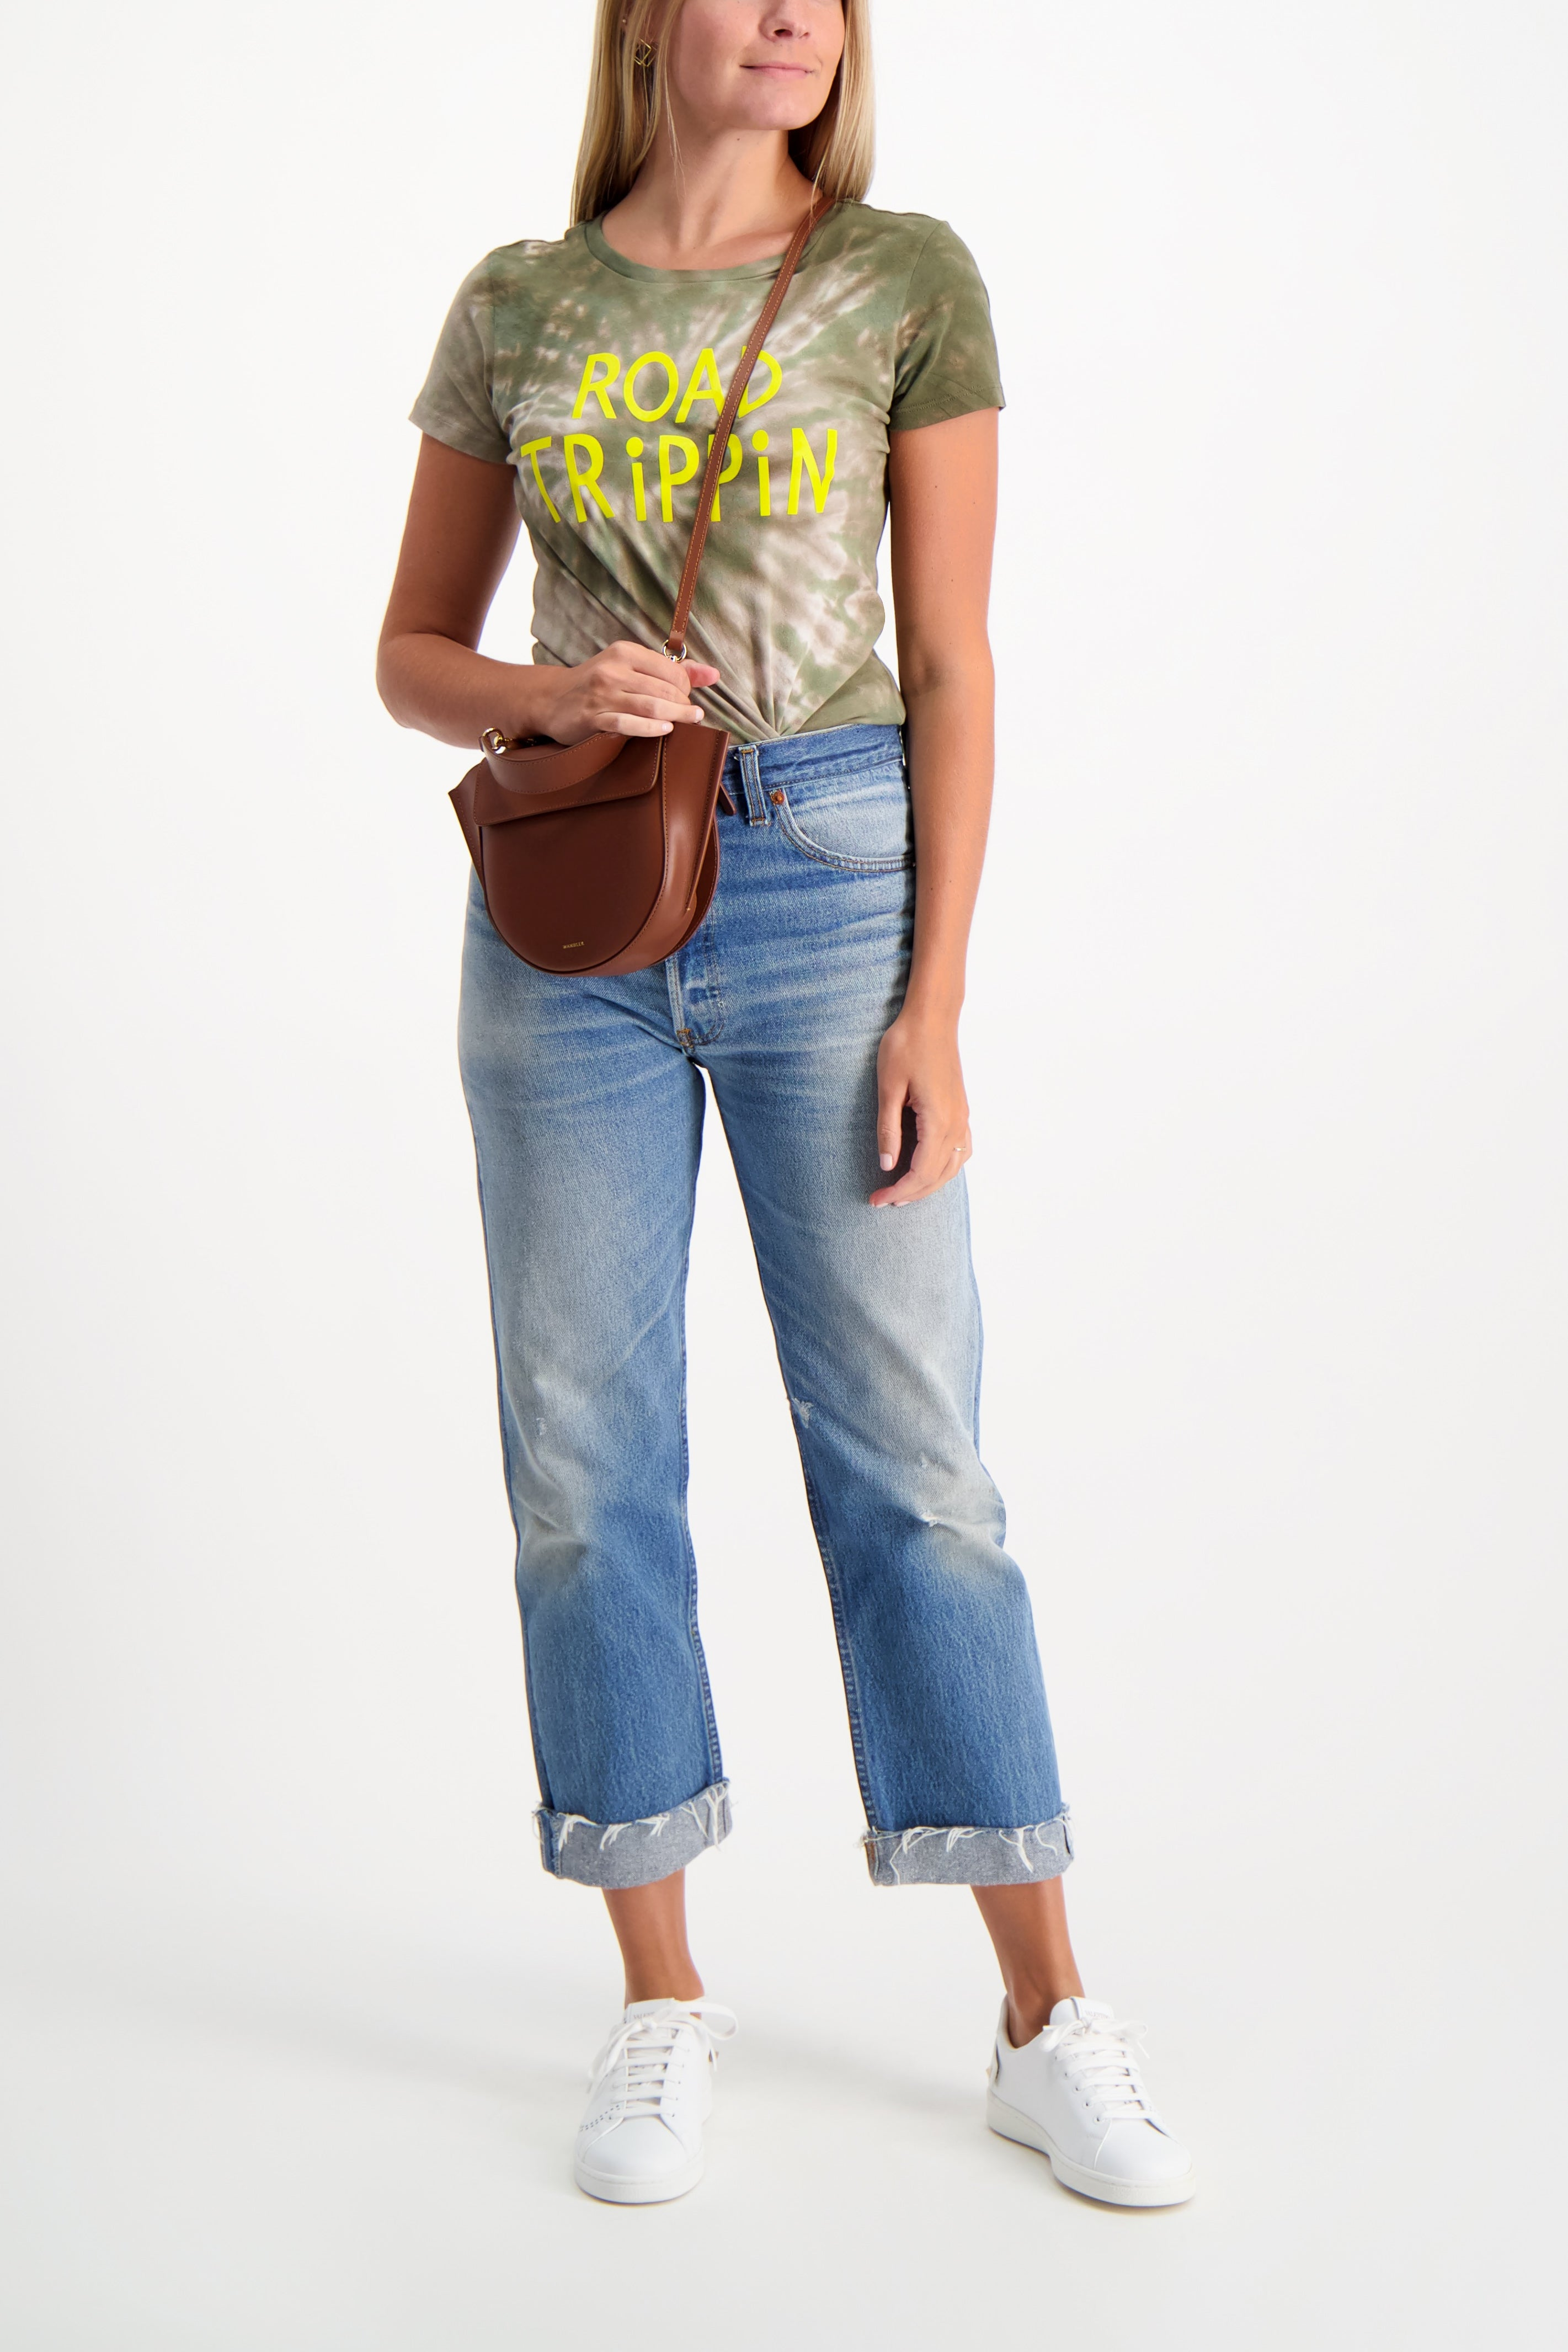 Full Body Image Of Model Wearing Image Of Mother Denim Itty Bitty Goodie Goodie Tee